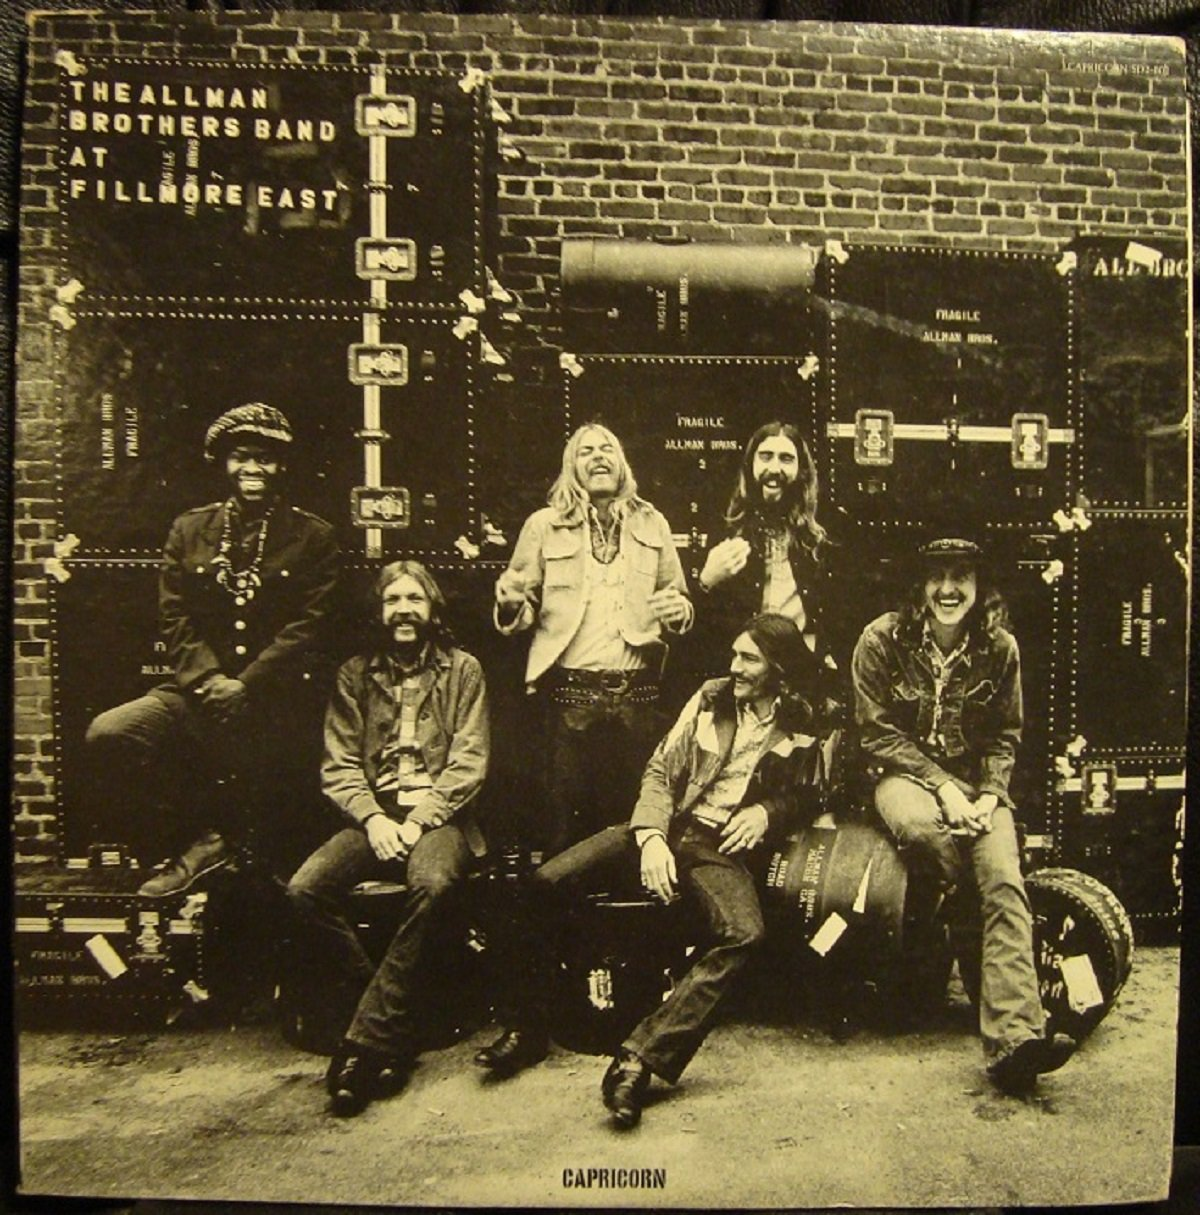 At The Fillmore East by CAPRICORN